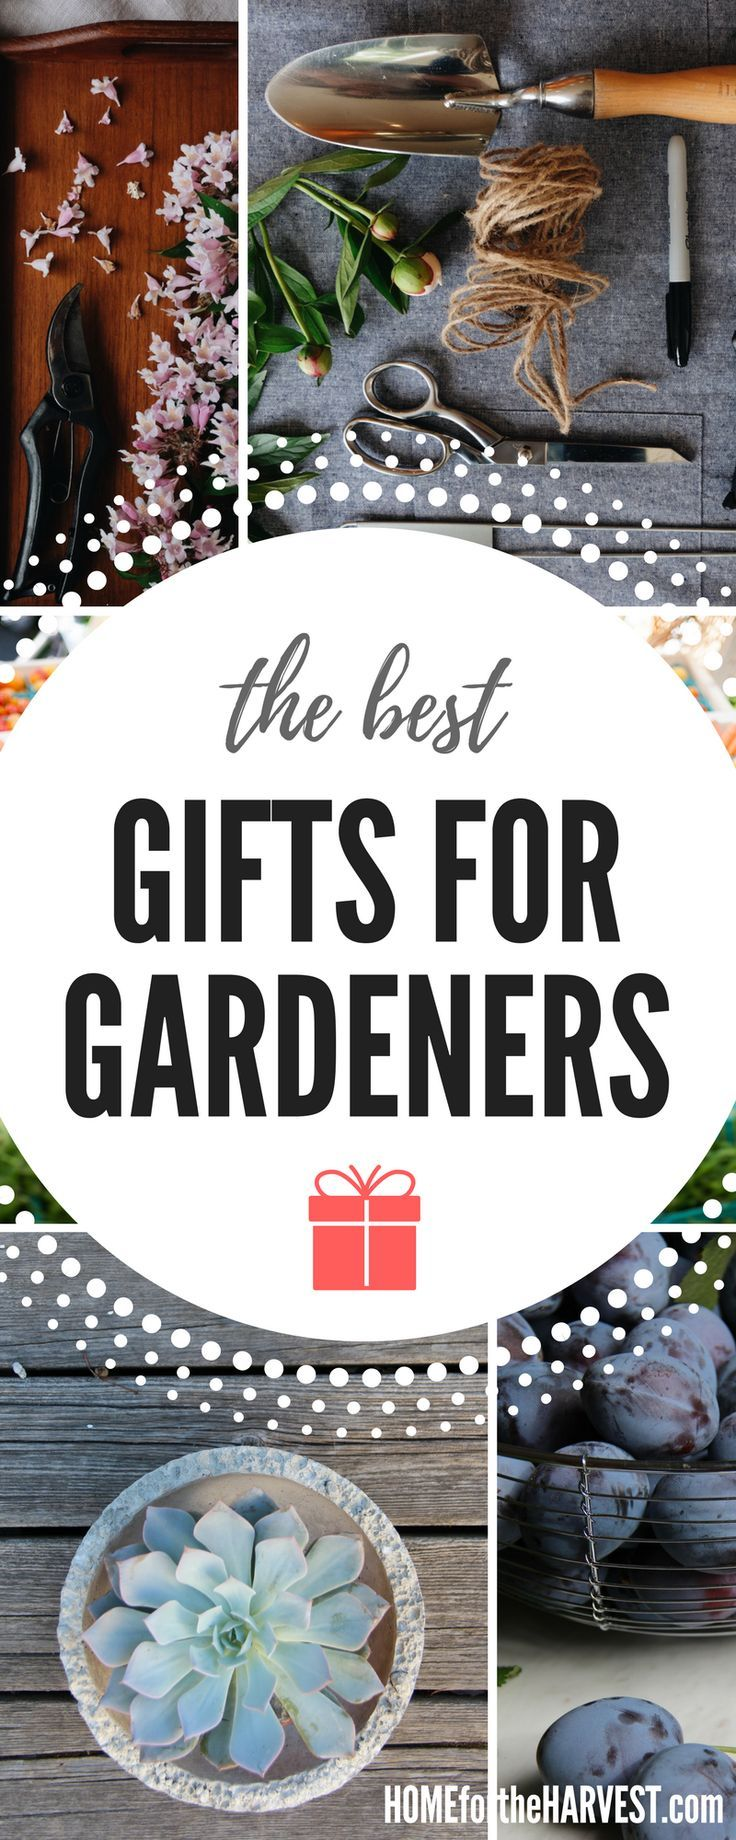 The Best Gifts For Gardeners: A Garden Loveru0027s Gift Guide